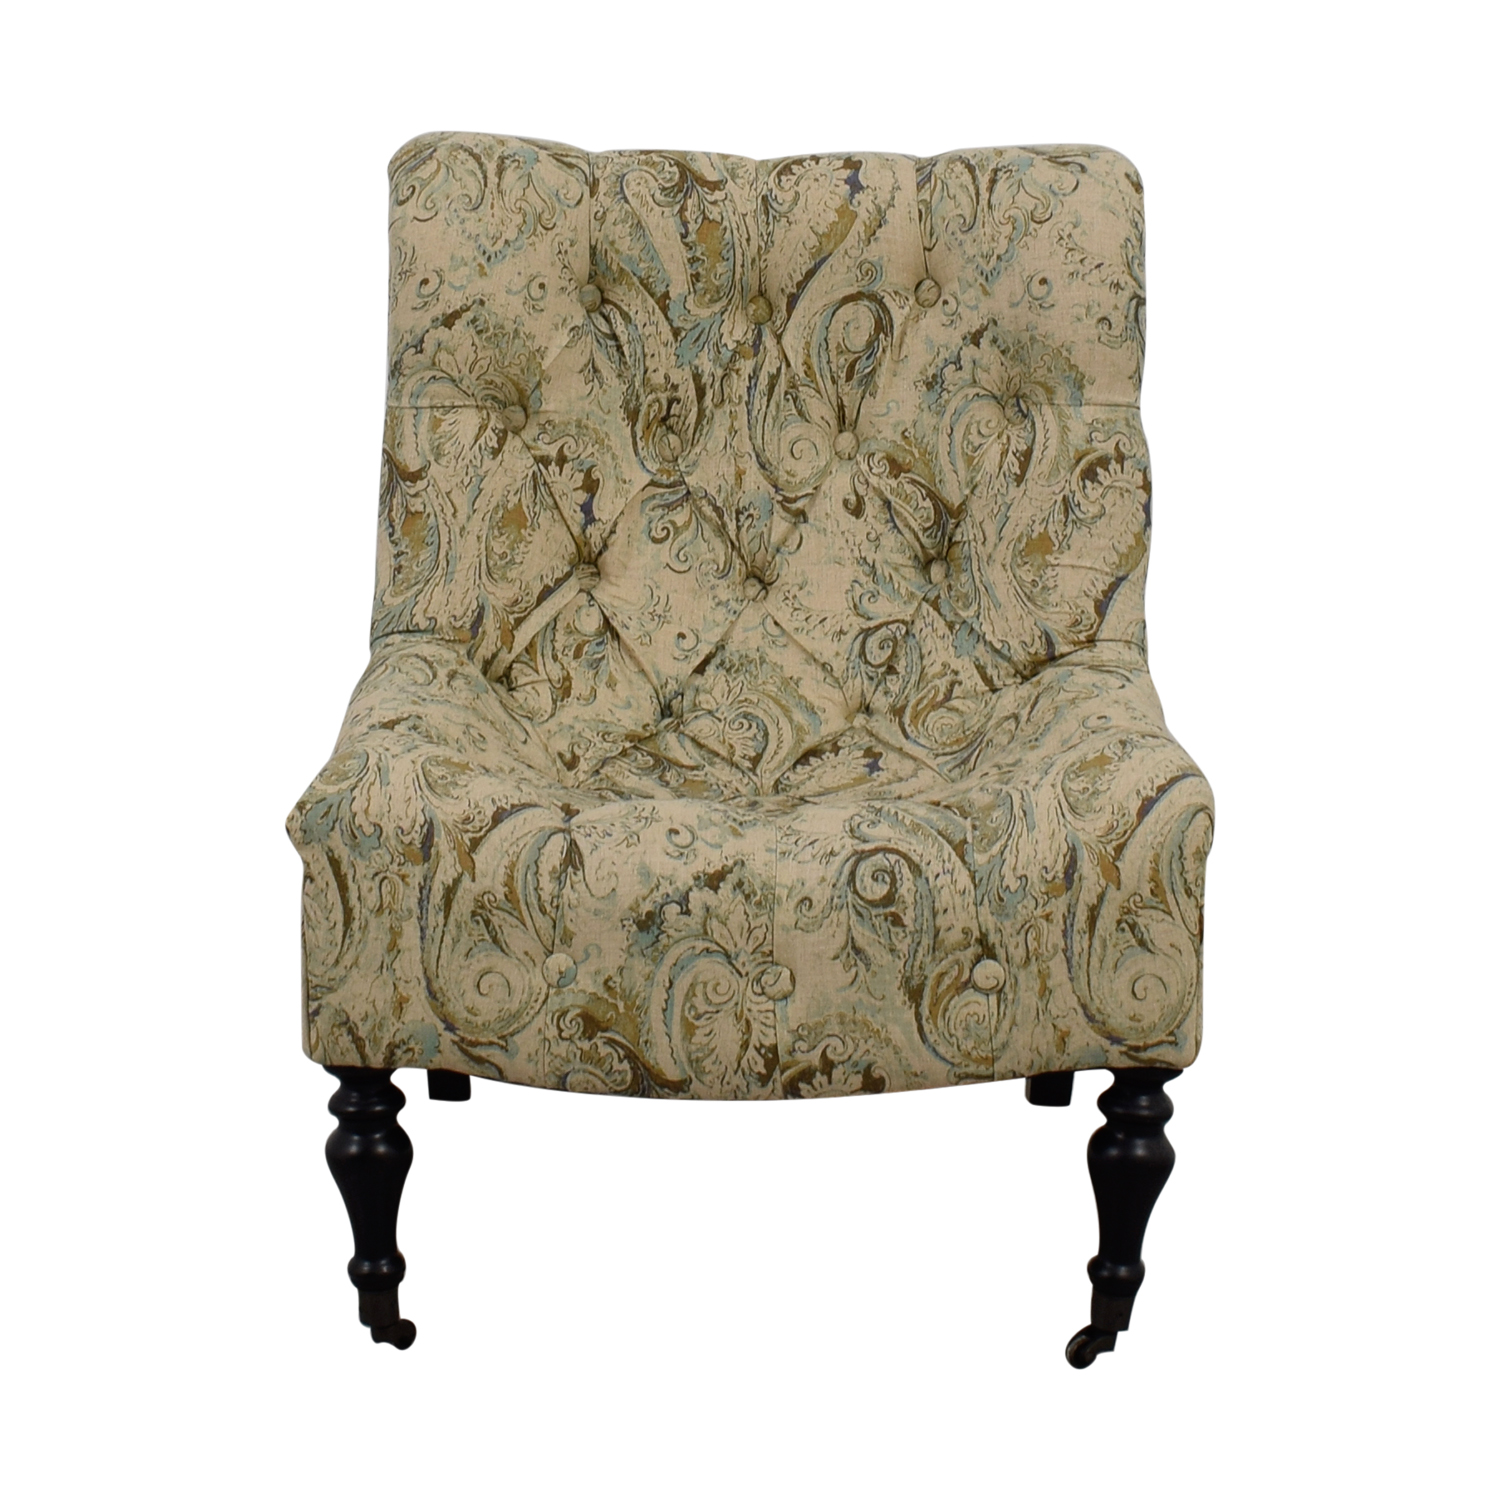 Green Upholstered Chair 75 Off Bombay Company Bombay Beige With Blue And Green Upholstered Accent Chair Chairs